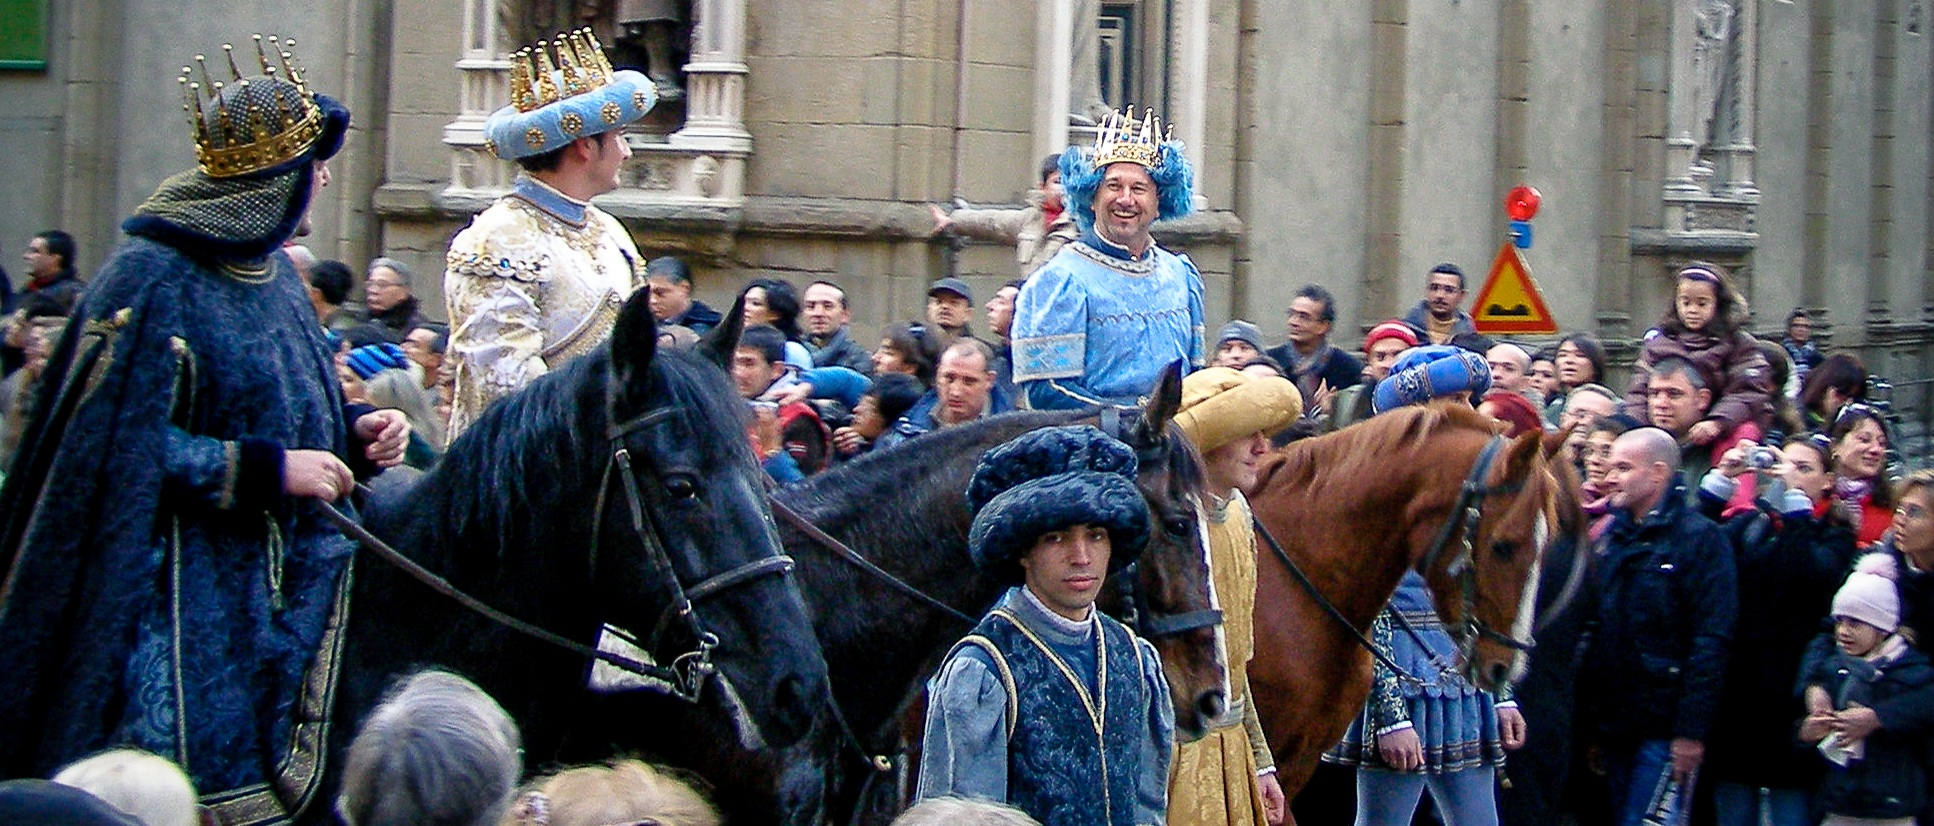 The Three Kings make their way through the streets of Florence.